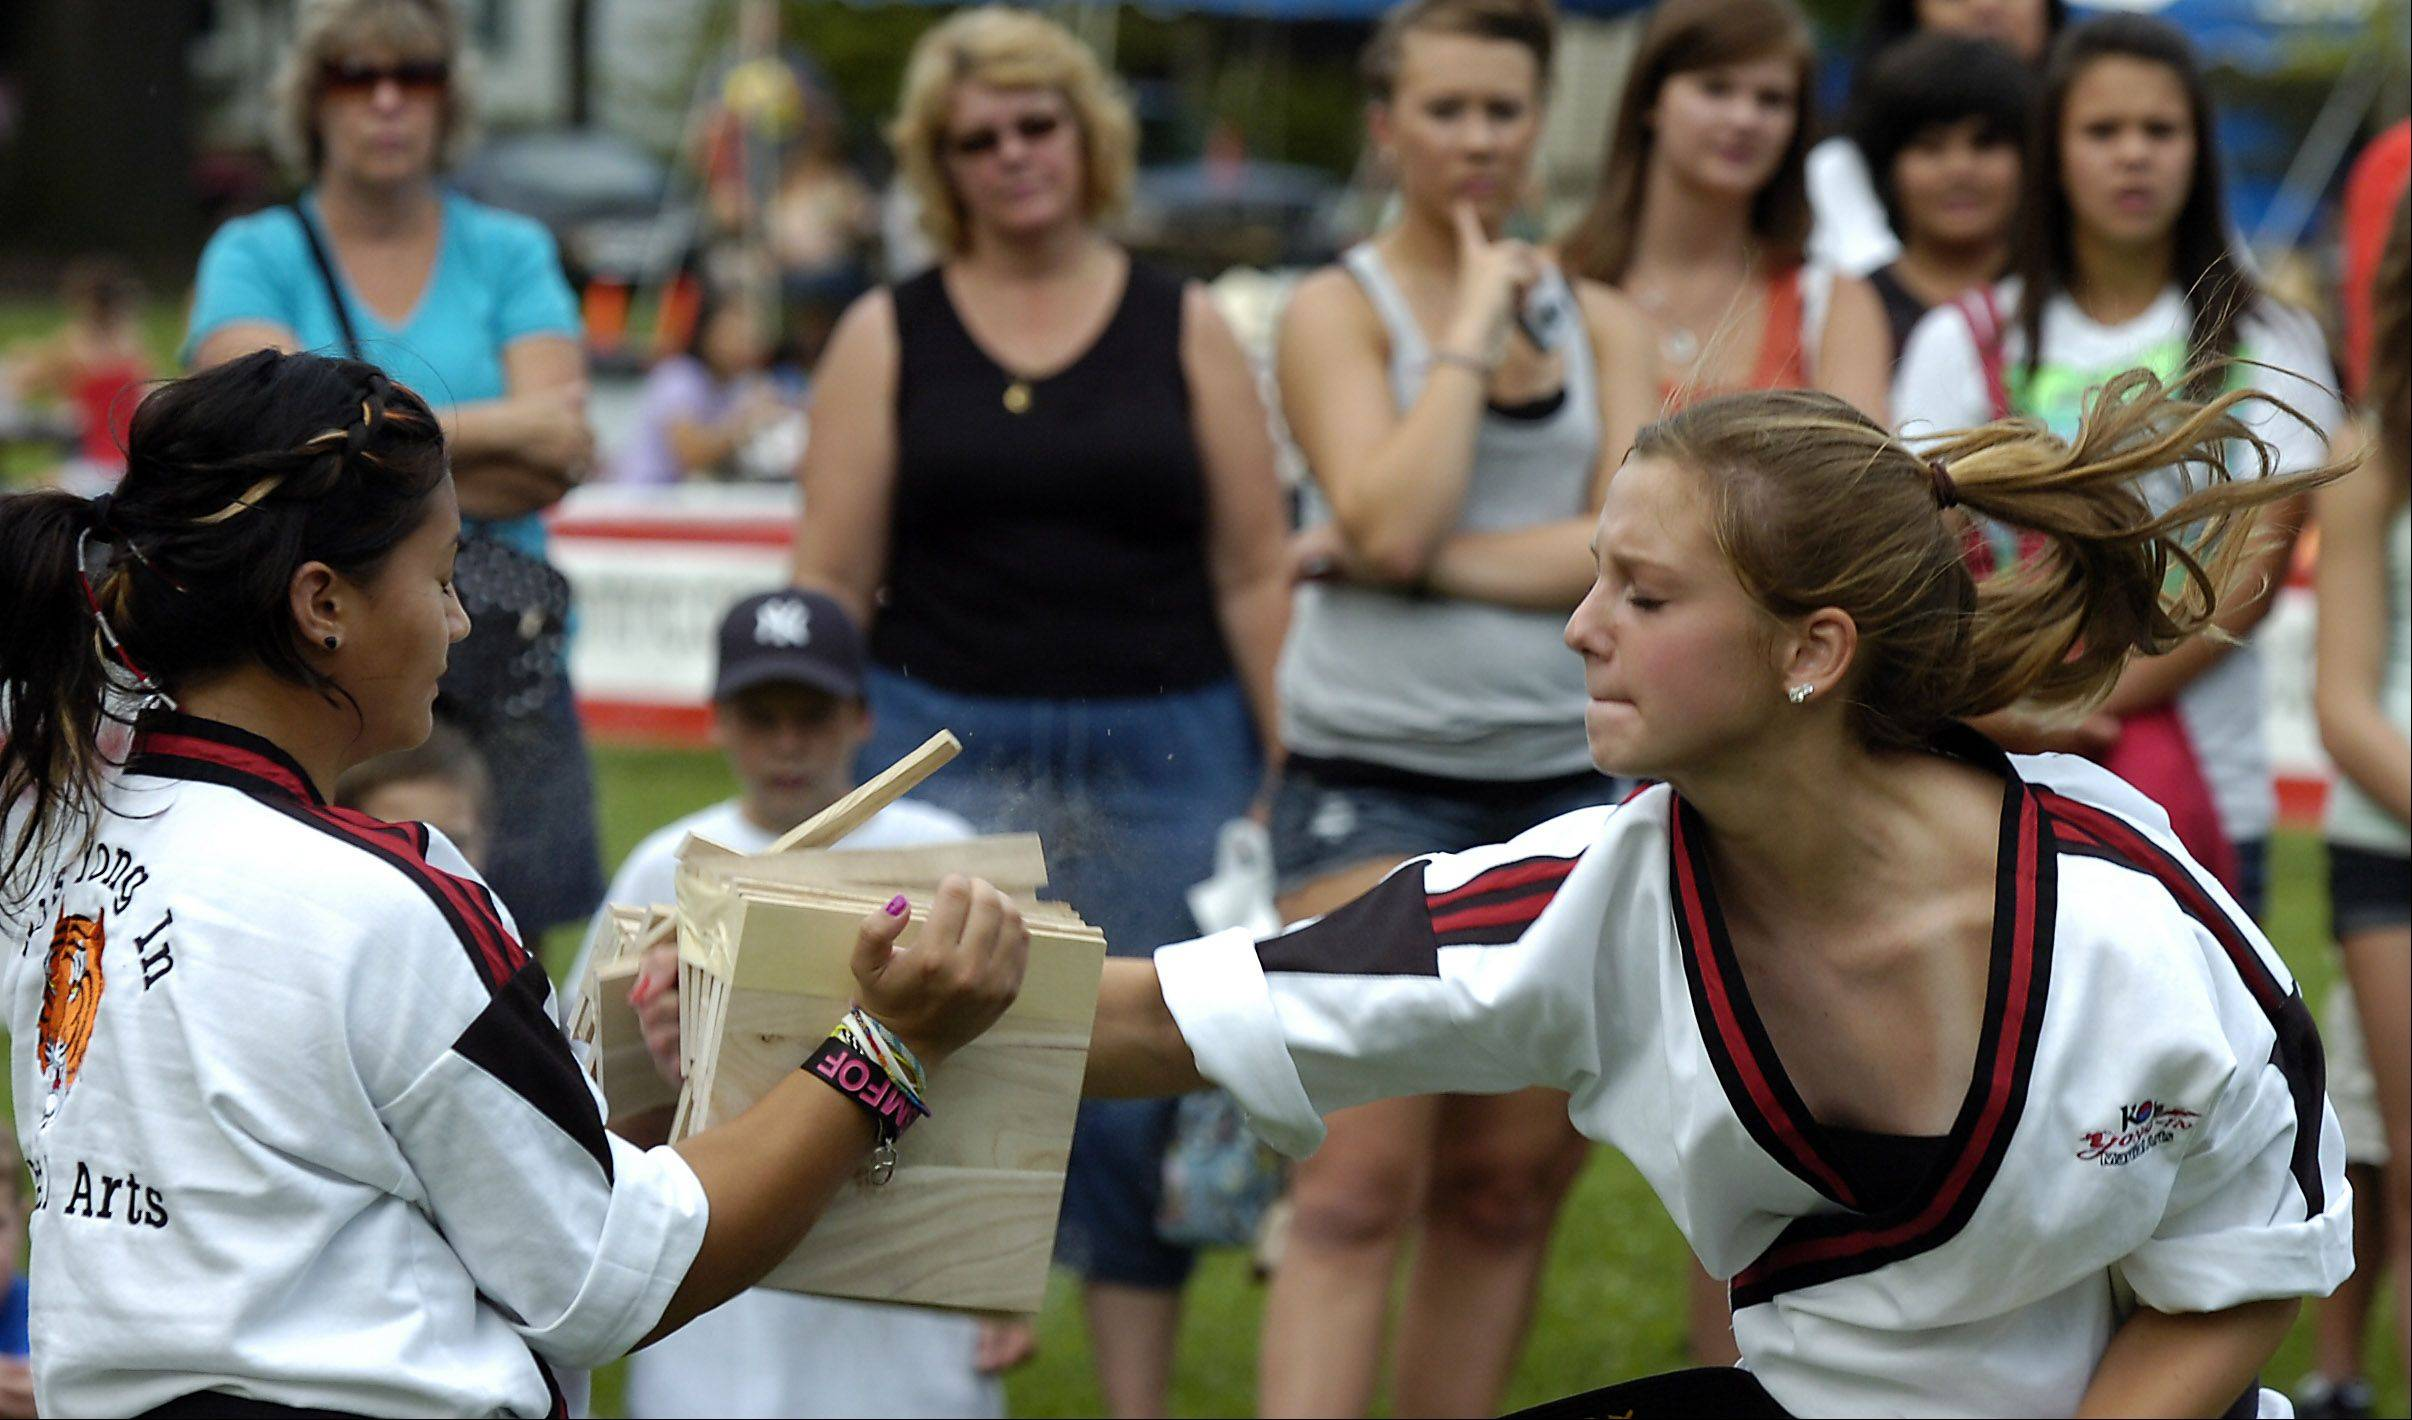 Emily Witt, 14, of Bartlett, breaks five boards held by Kate Zabat, 14, at last year's Bartlett National Night Out in a demonstration put on by the Ko's Yong In Team Tiger marital arts.